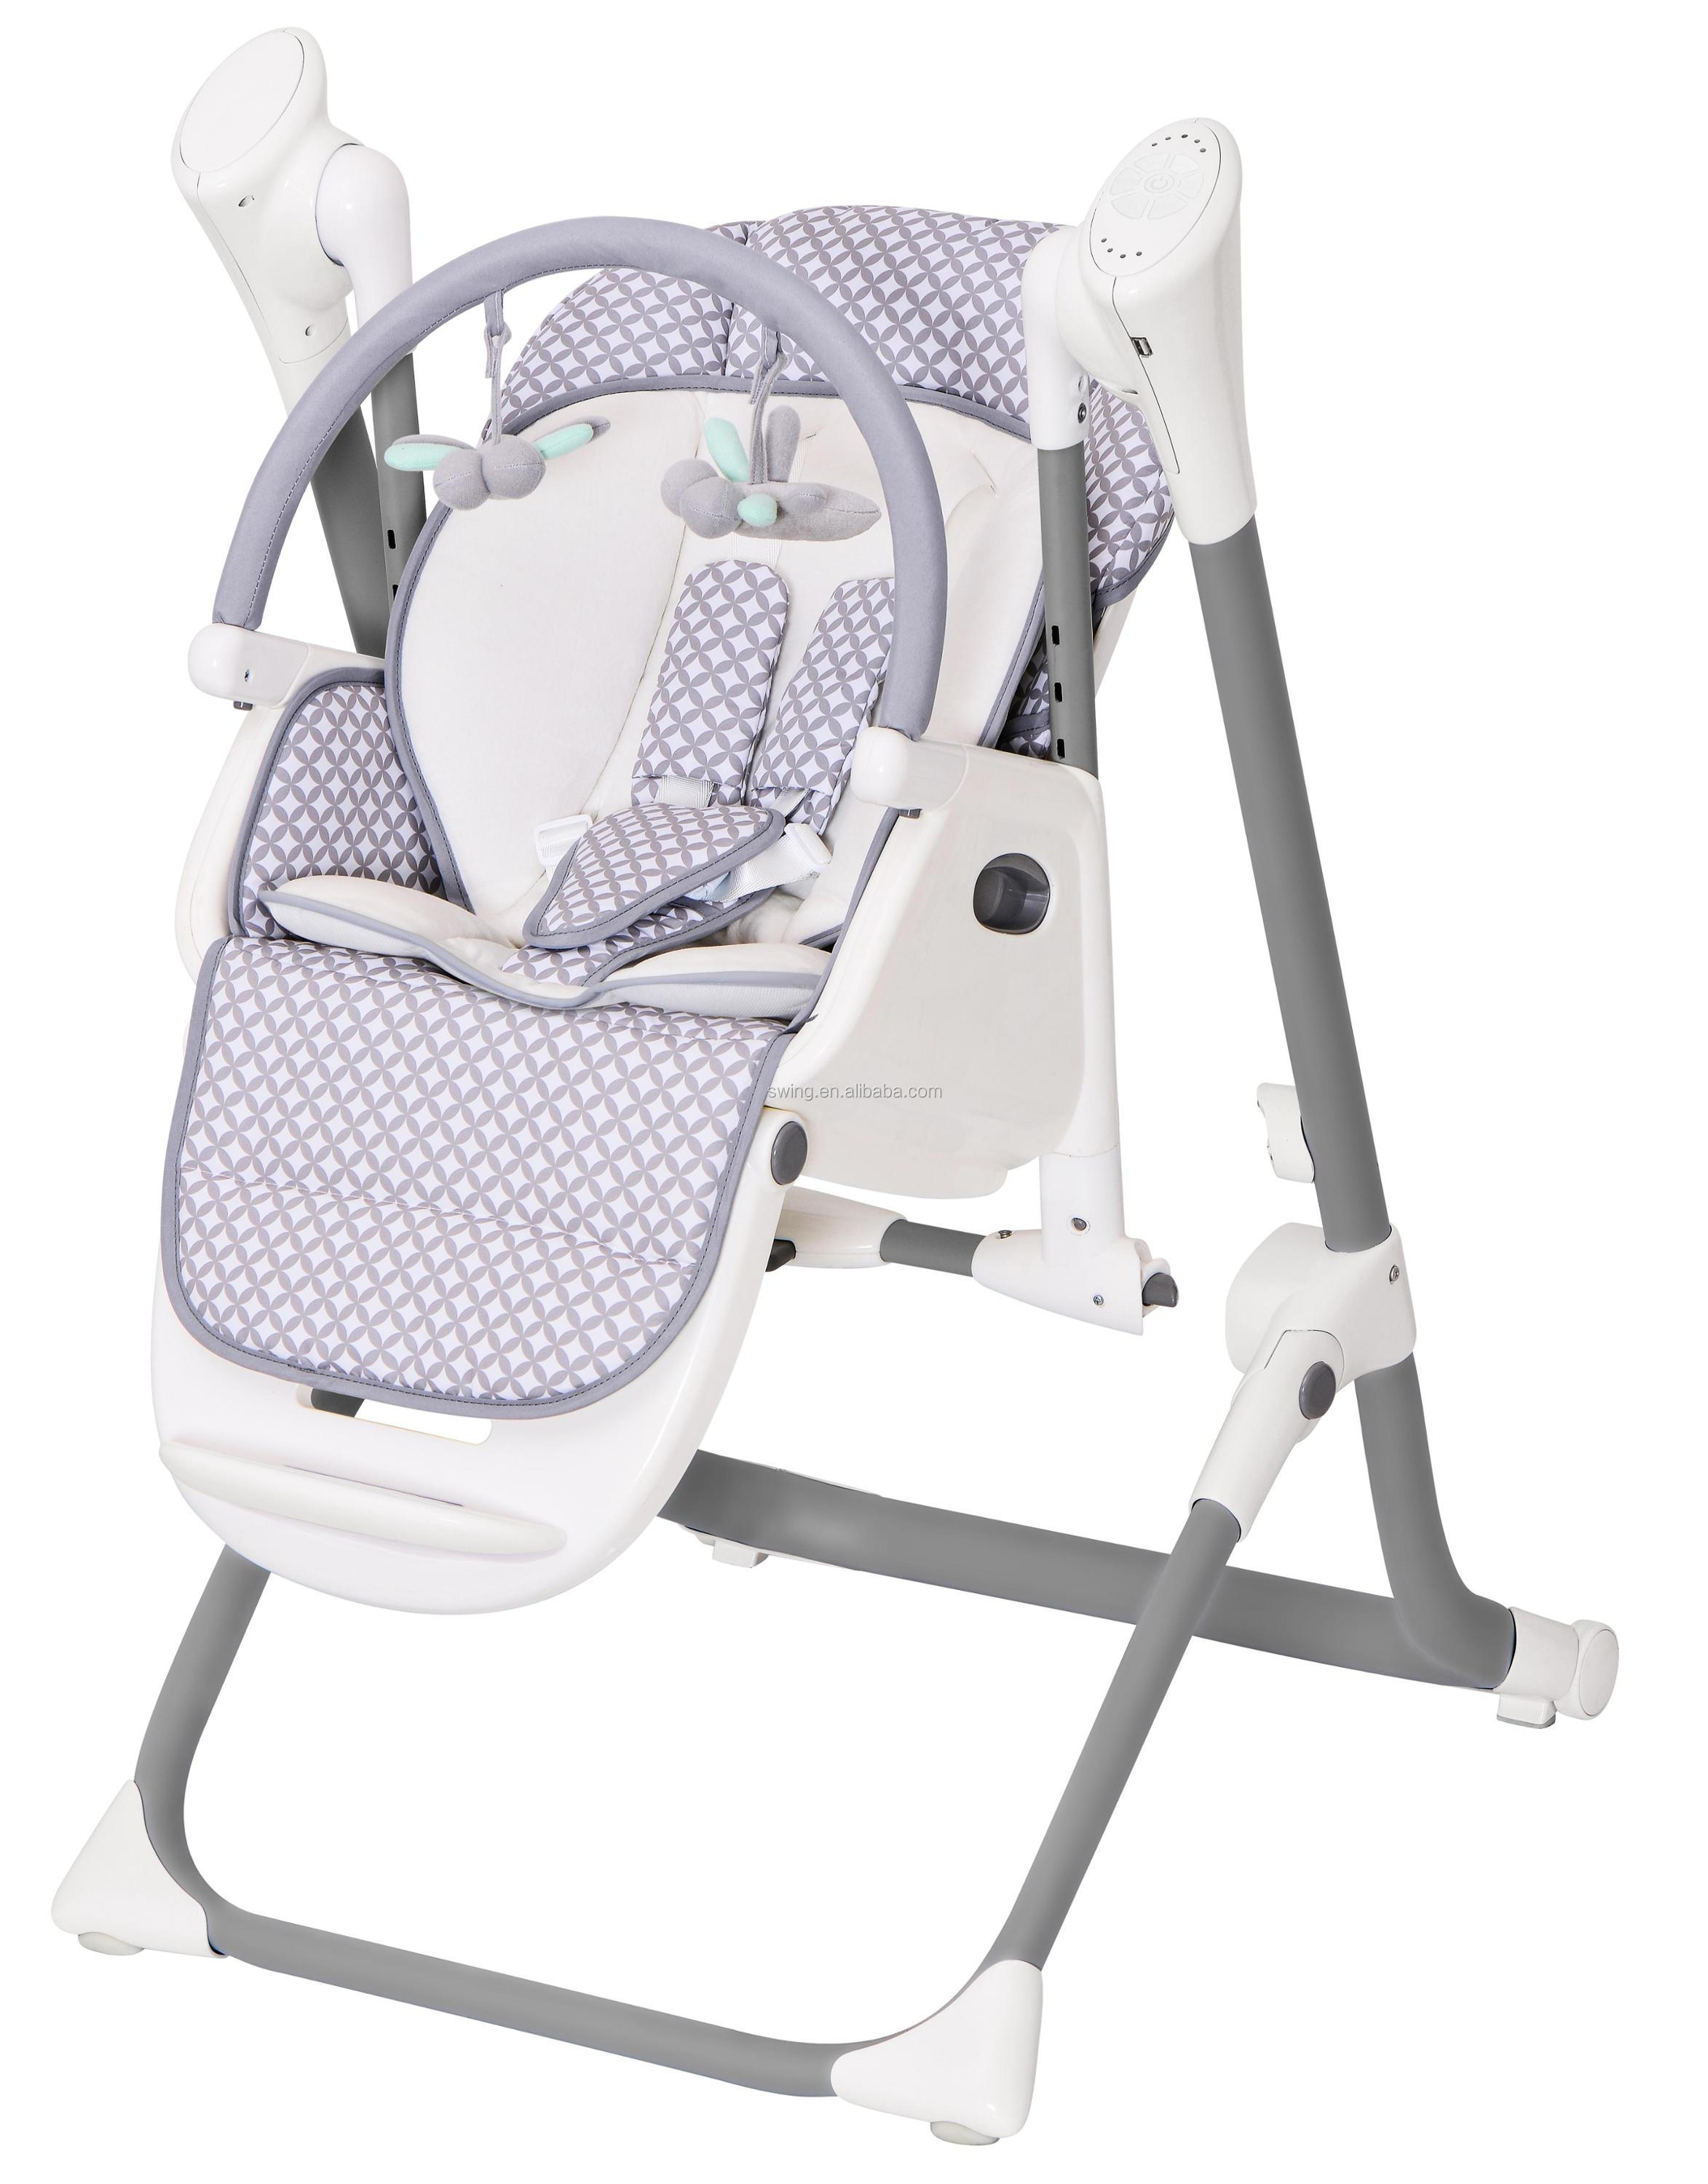 Multi-function high chair/swing 2 in 1,High chair/swing with tray and safety belt,baby feeding table